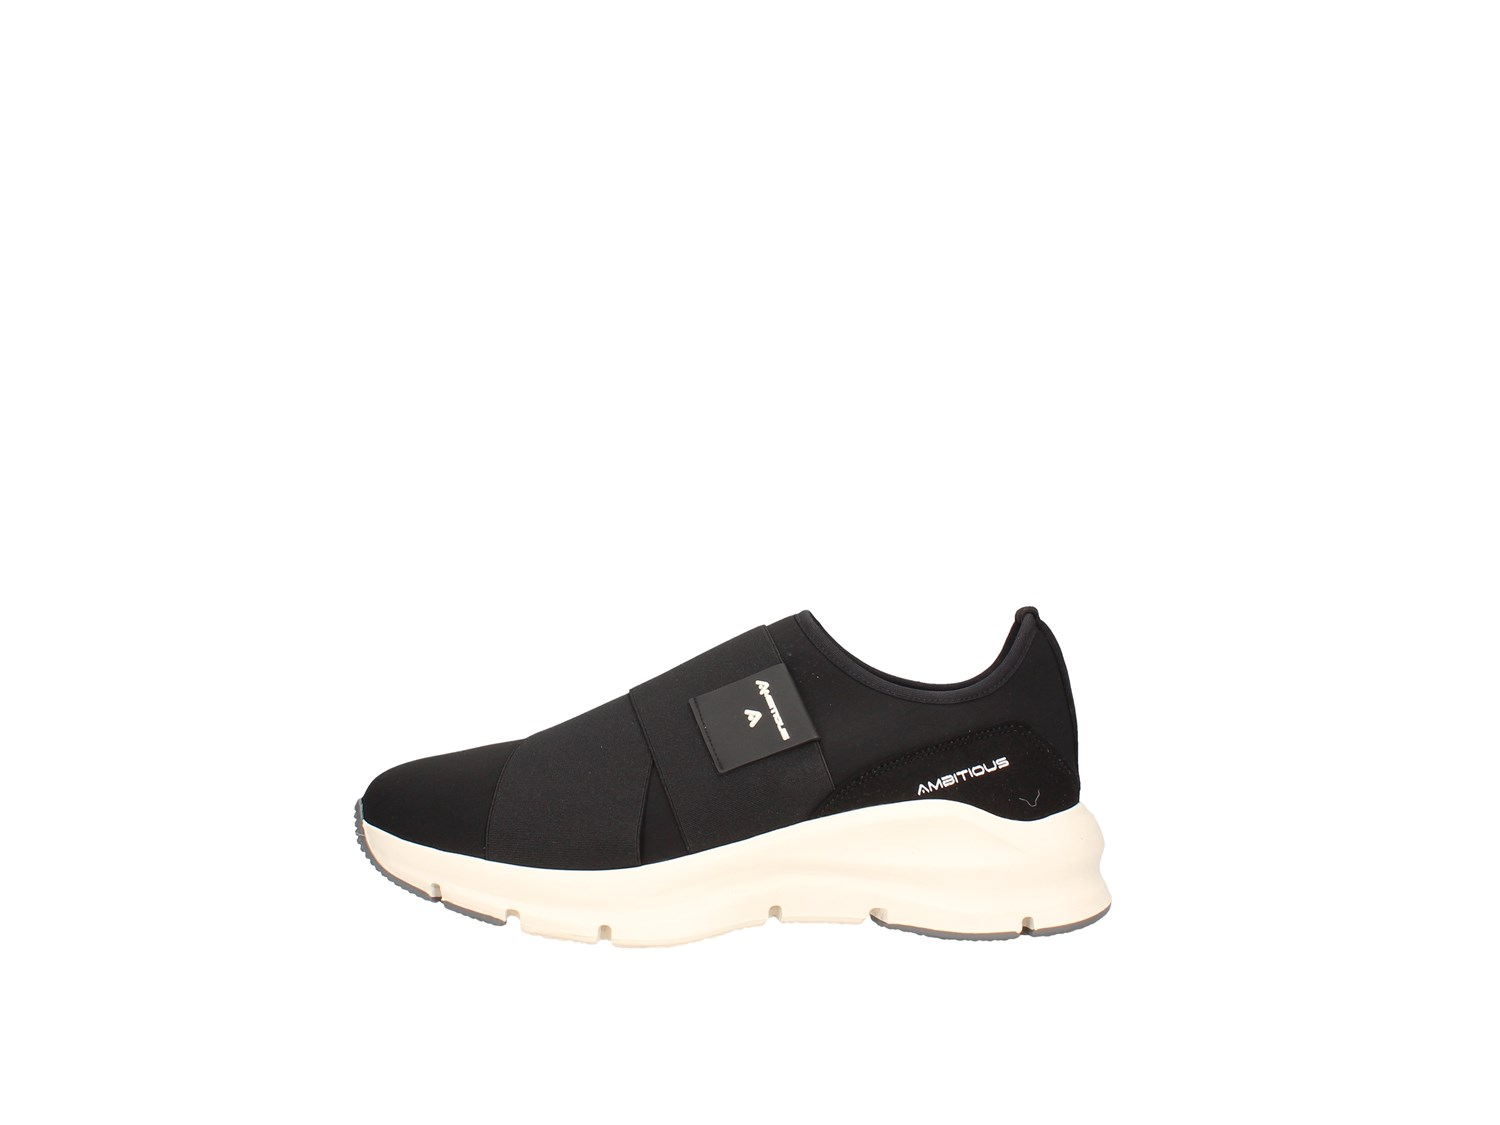 Ambitious 8383 Black Shoes Man Sneakers